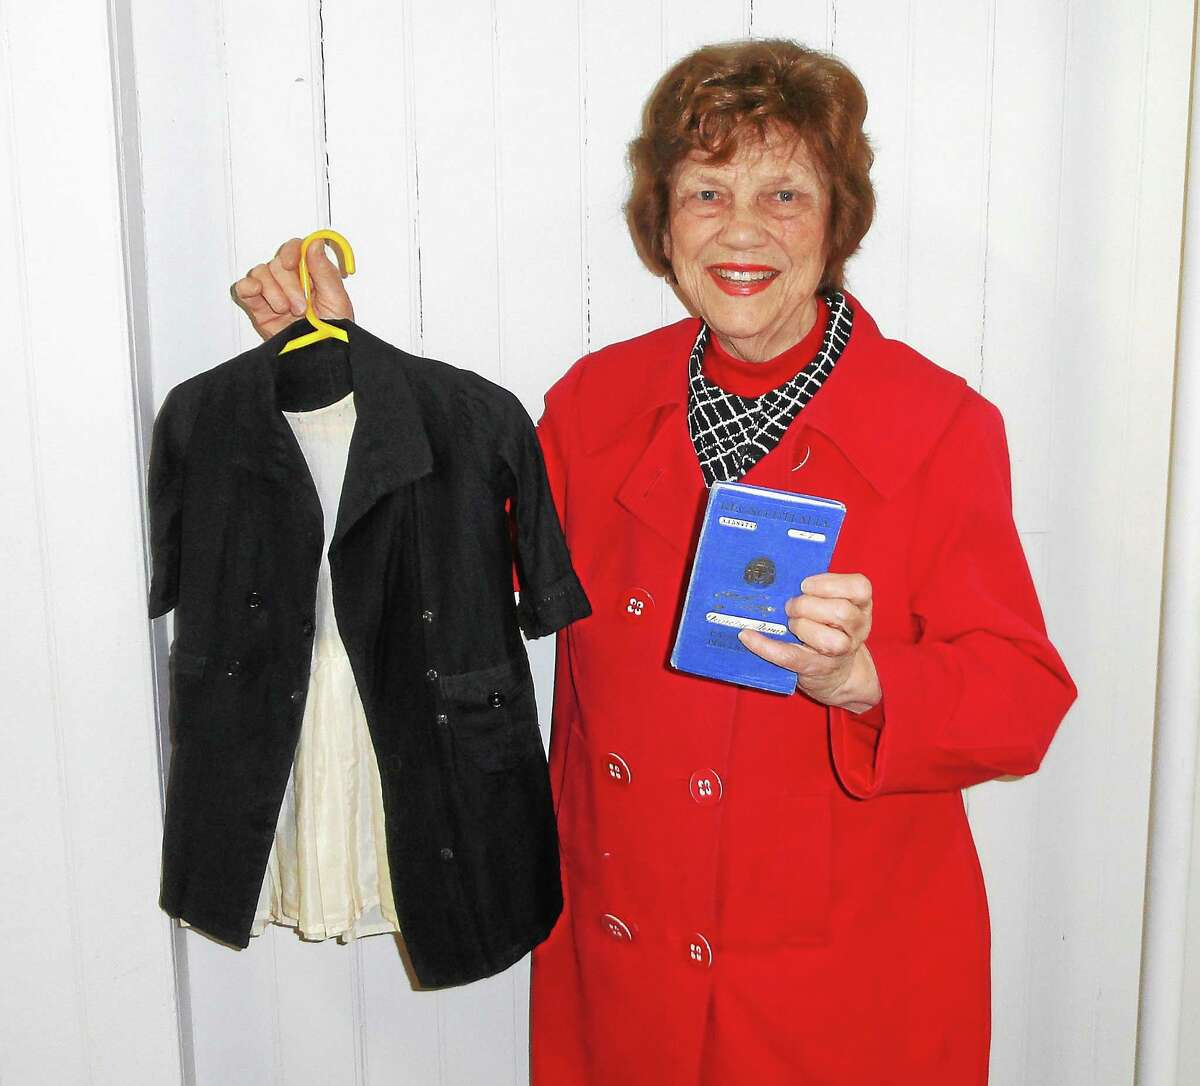 Barbara Arafeh of the Greater Middletown Concert Association holds the outfit that Angela Mancini Chiarappa of Middletown wore when she came through Ellis Island from Turi, Italy, at age 4.